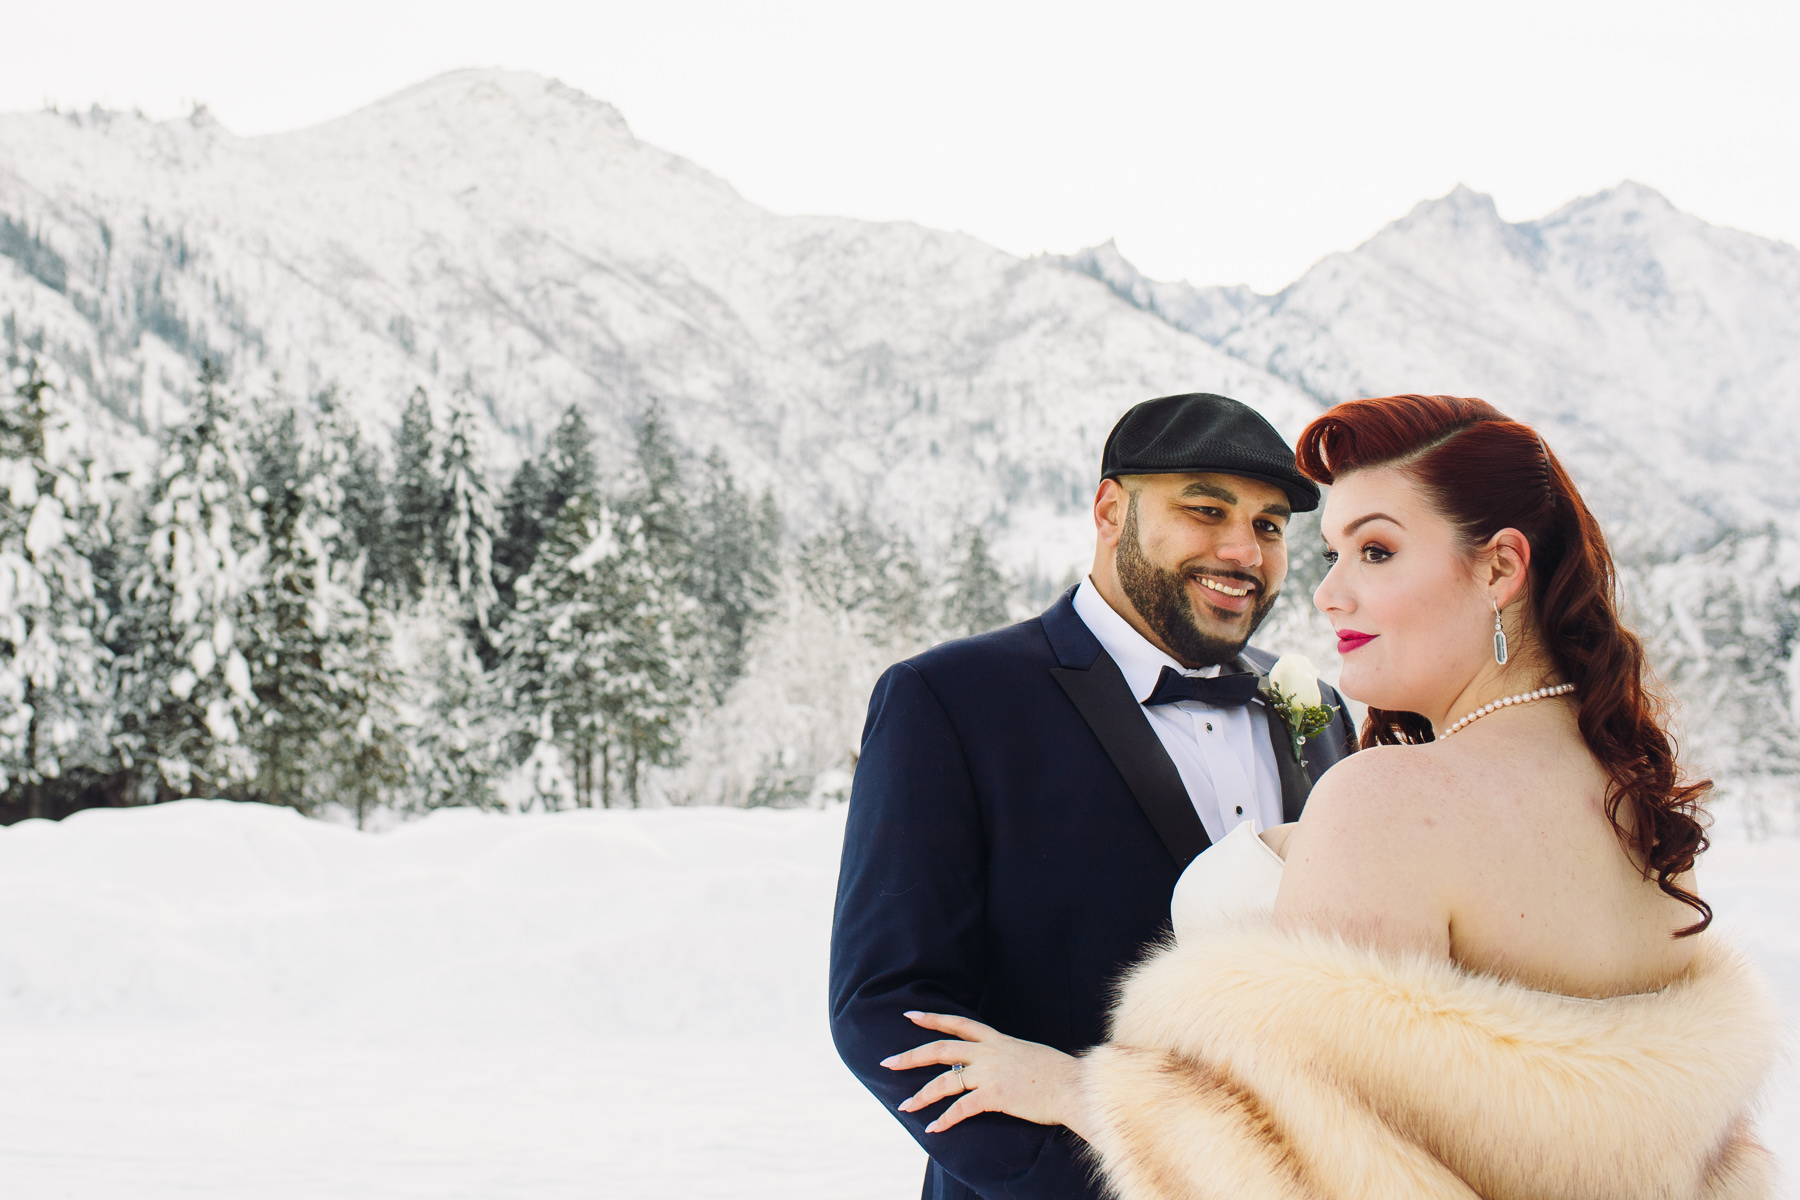 sleeping lady resort winter wedding portrait